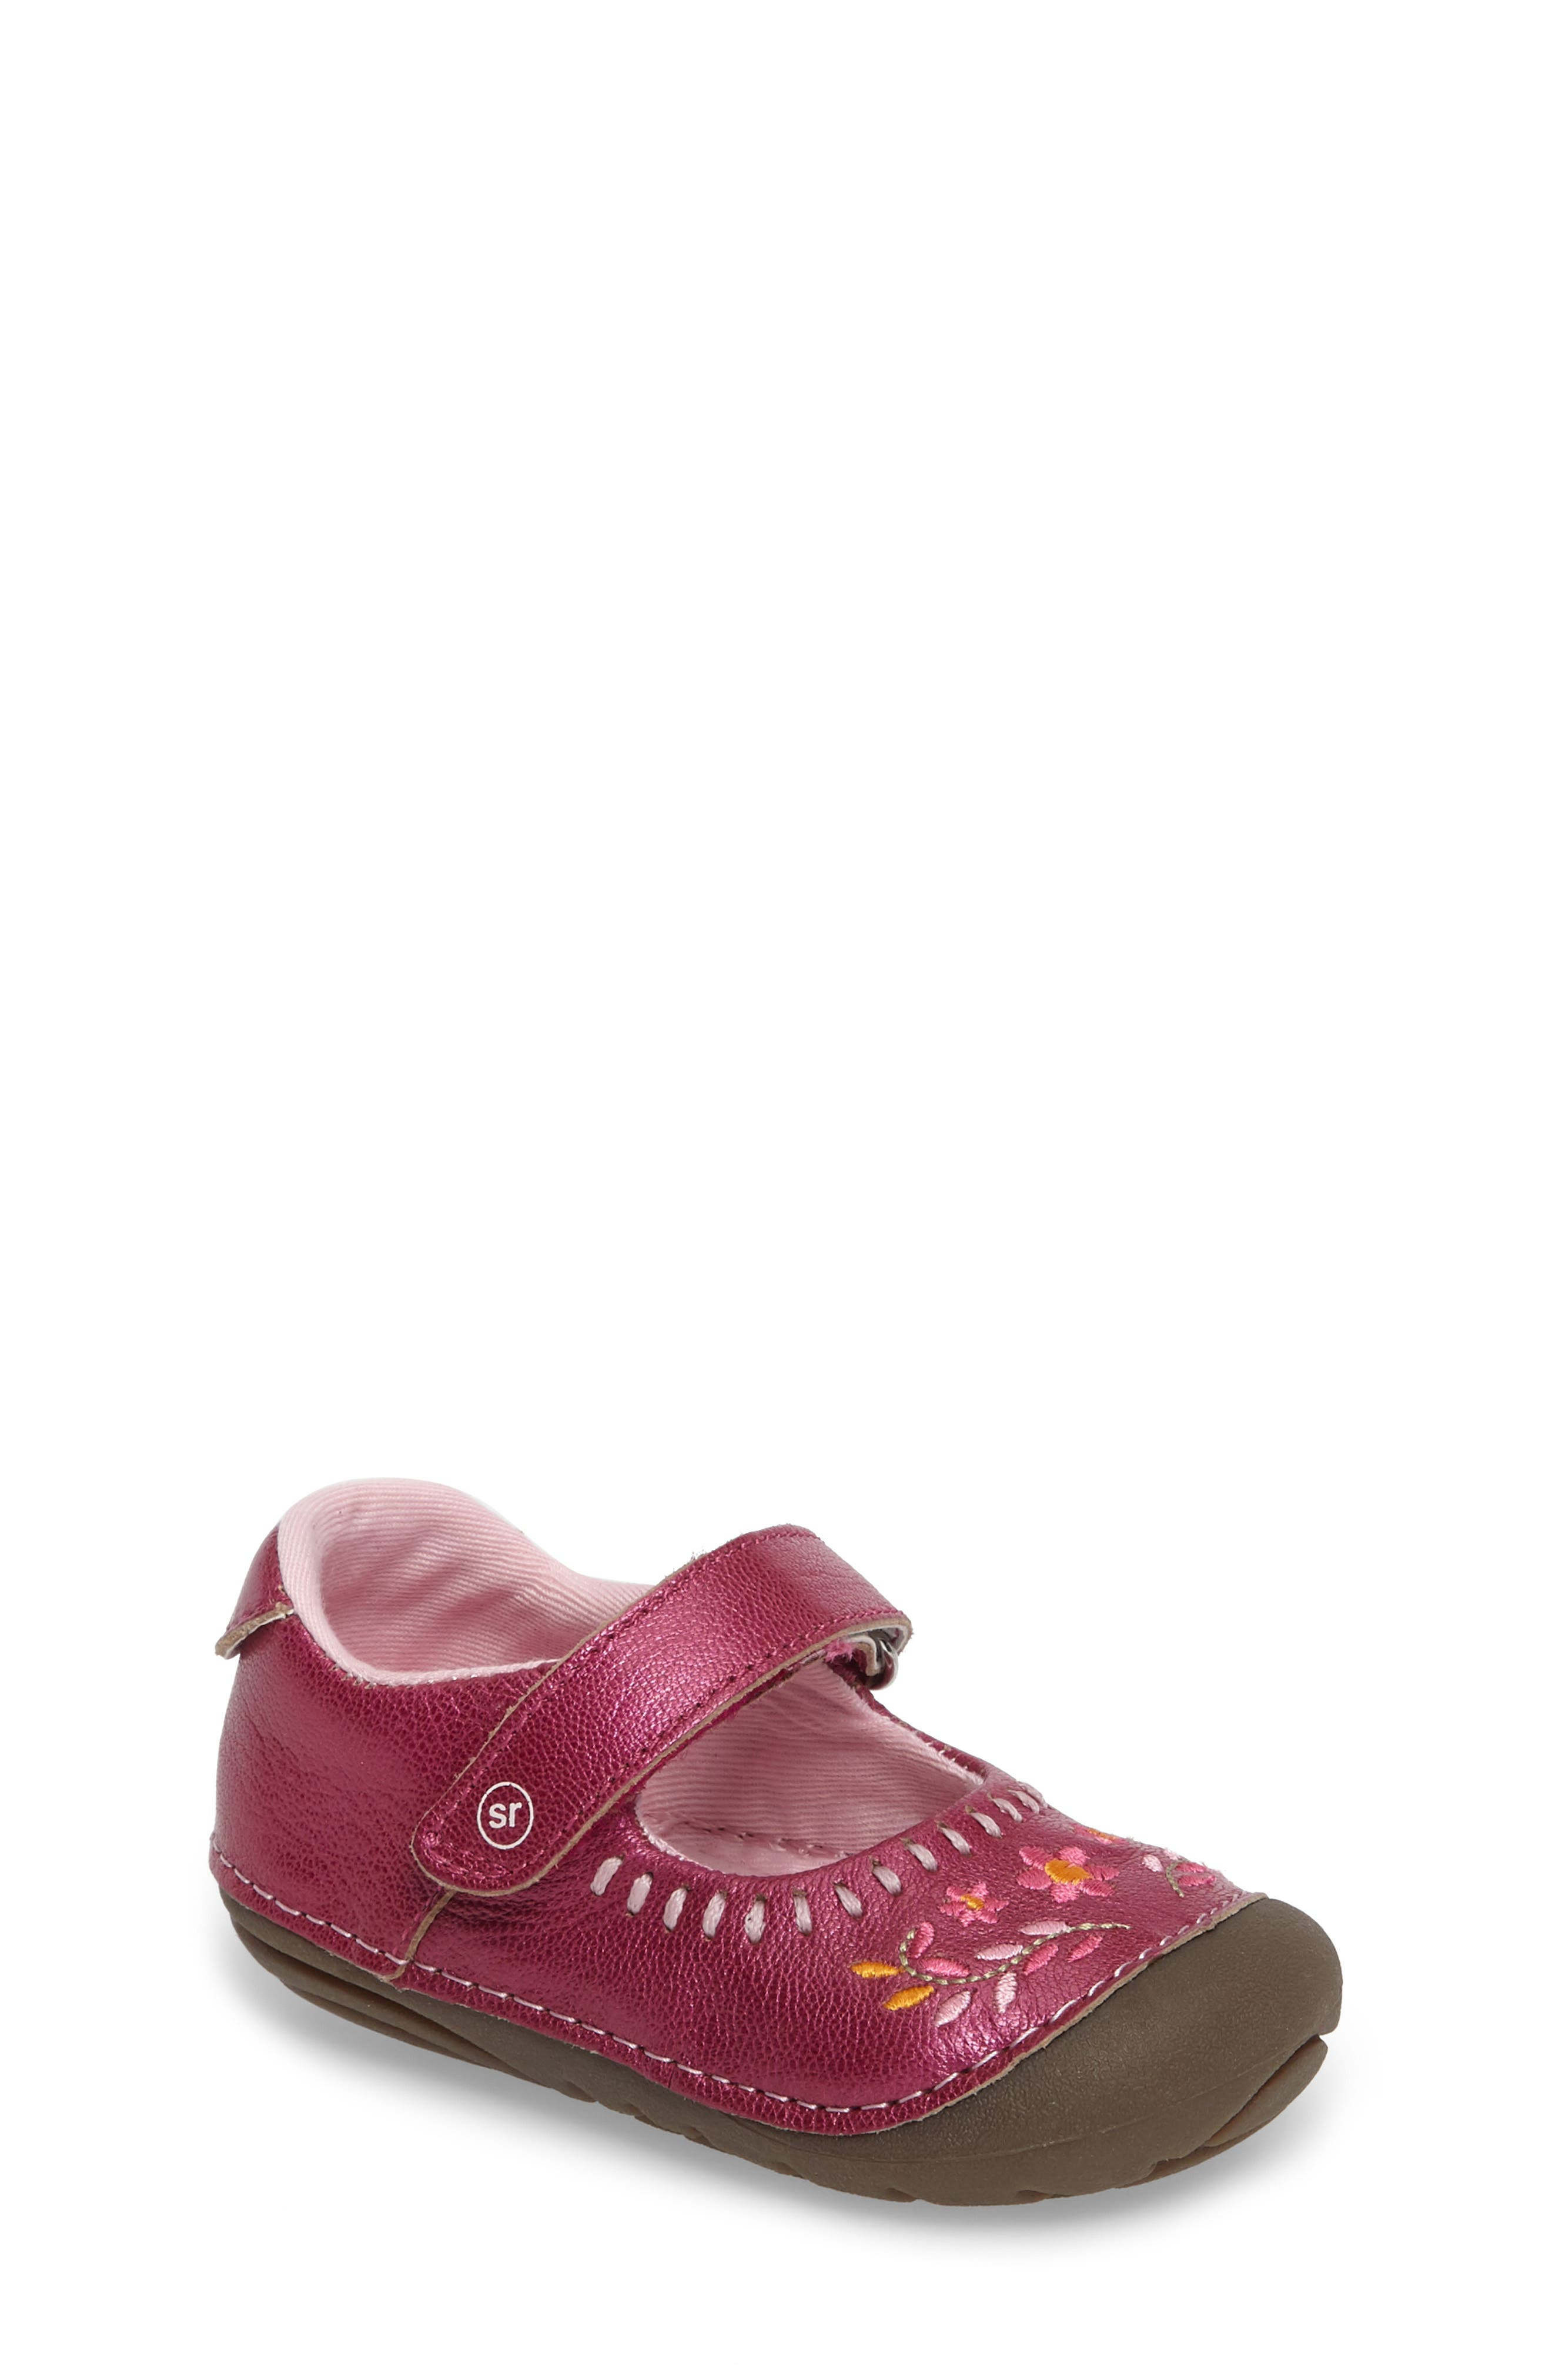 STRIDE RITE Atley Flower Embroidered Mary Jane